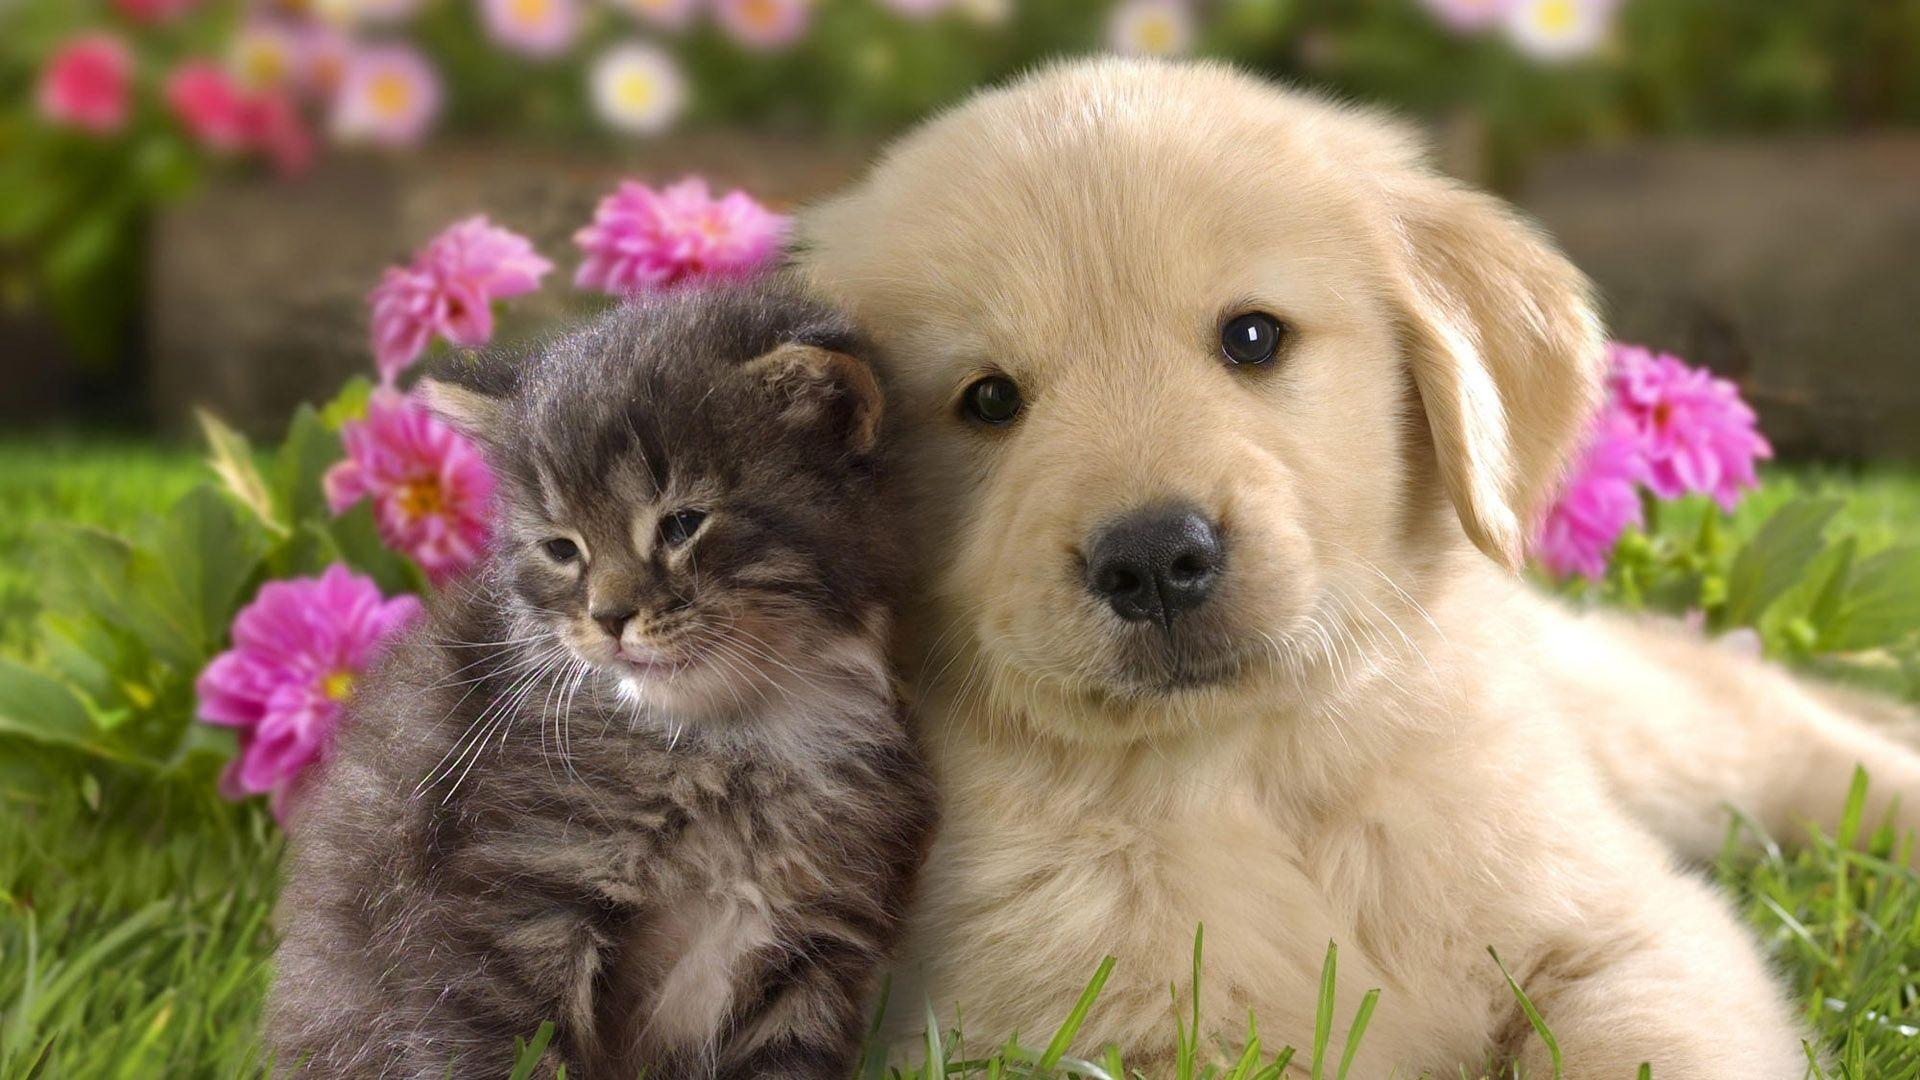 Puppy Hd Wallpapers Wallpaper Cave